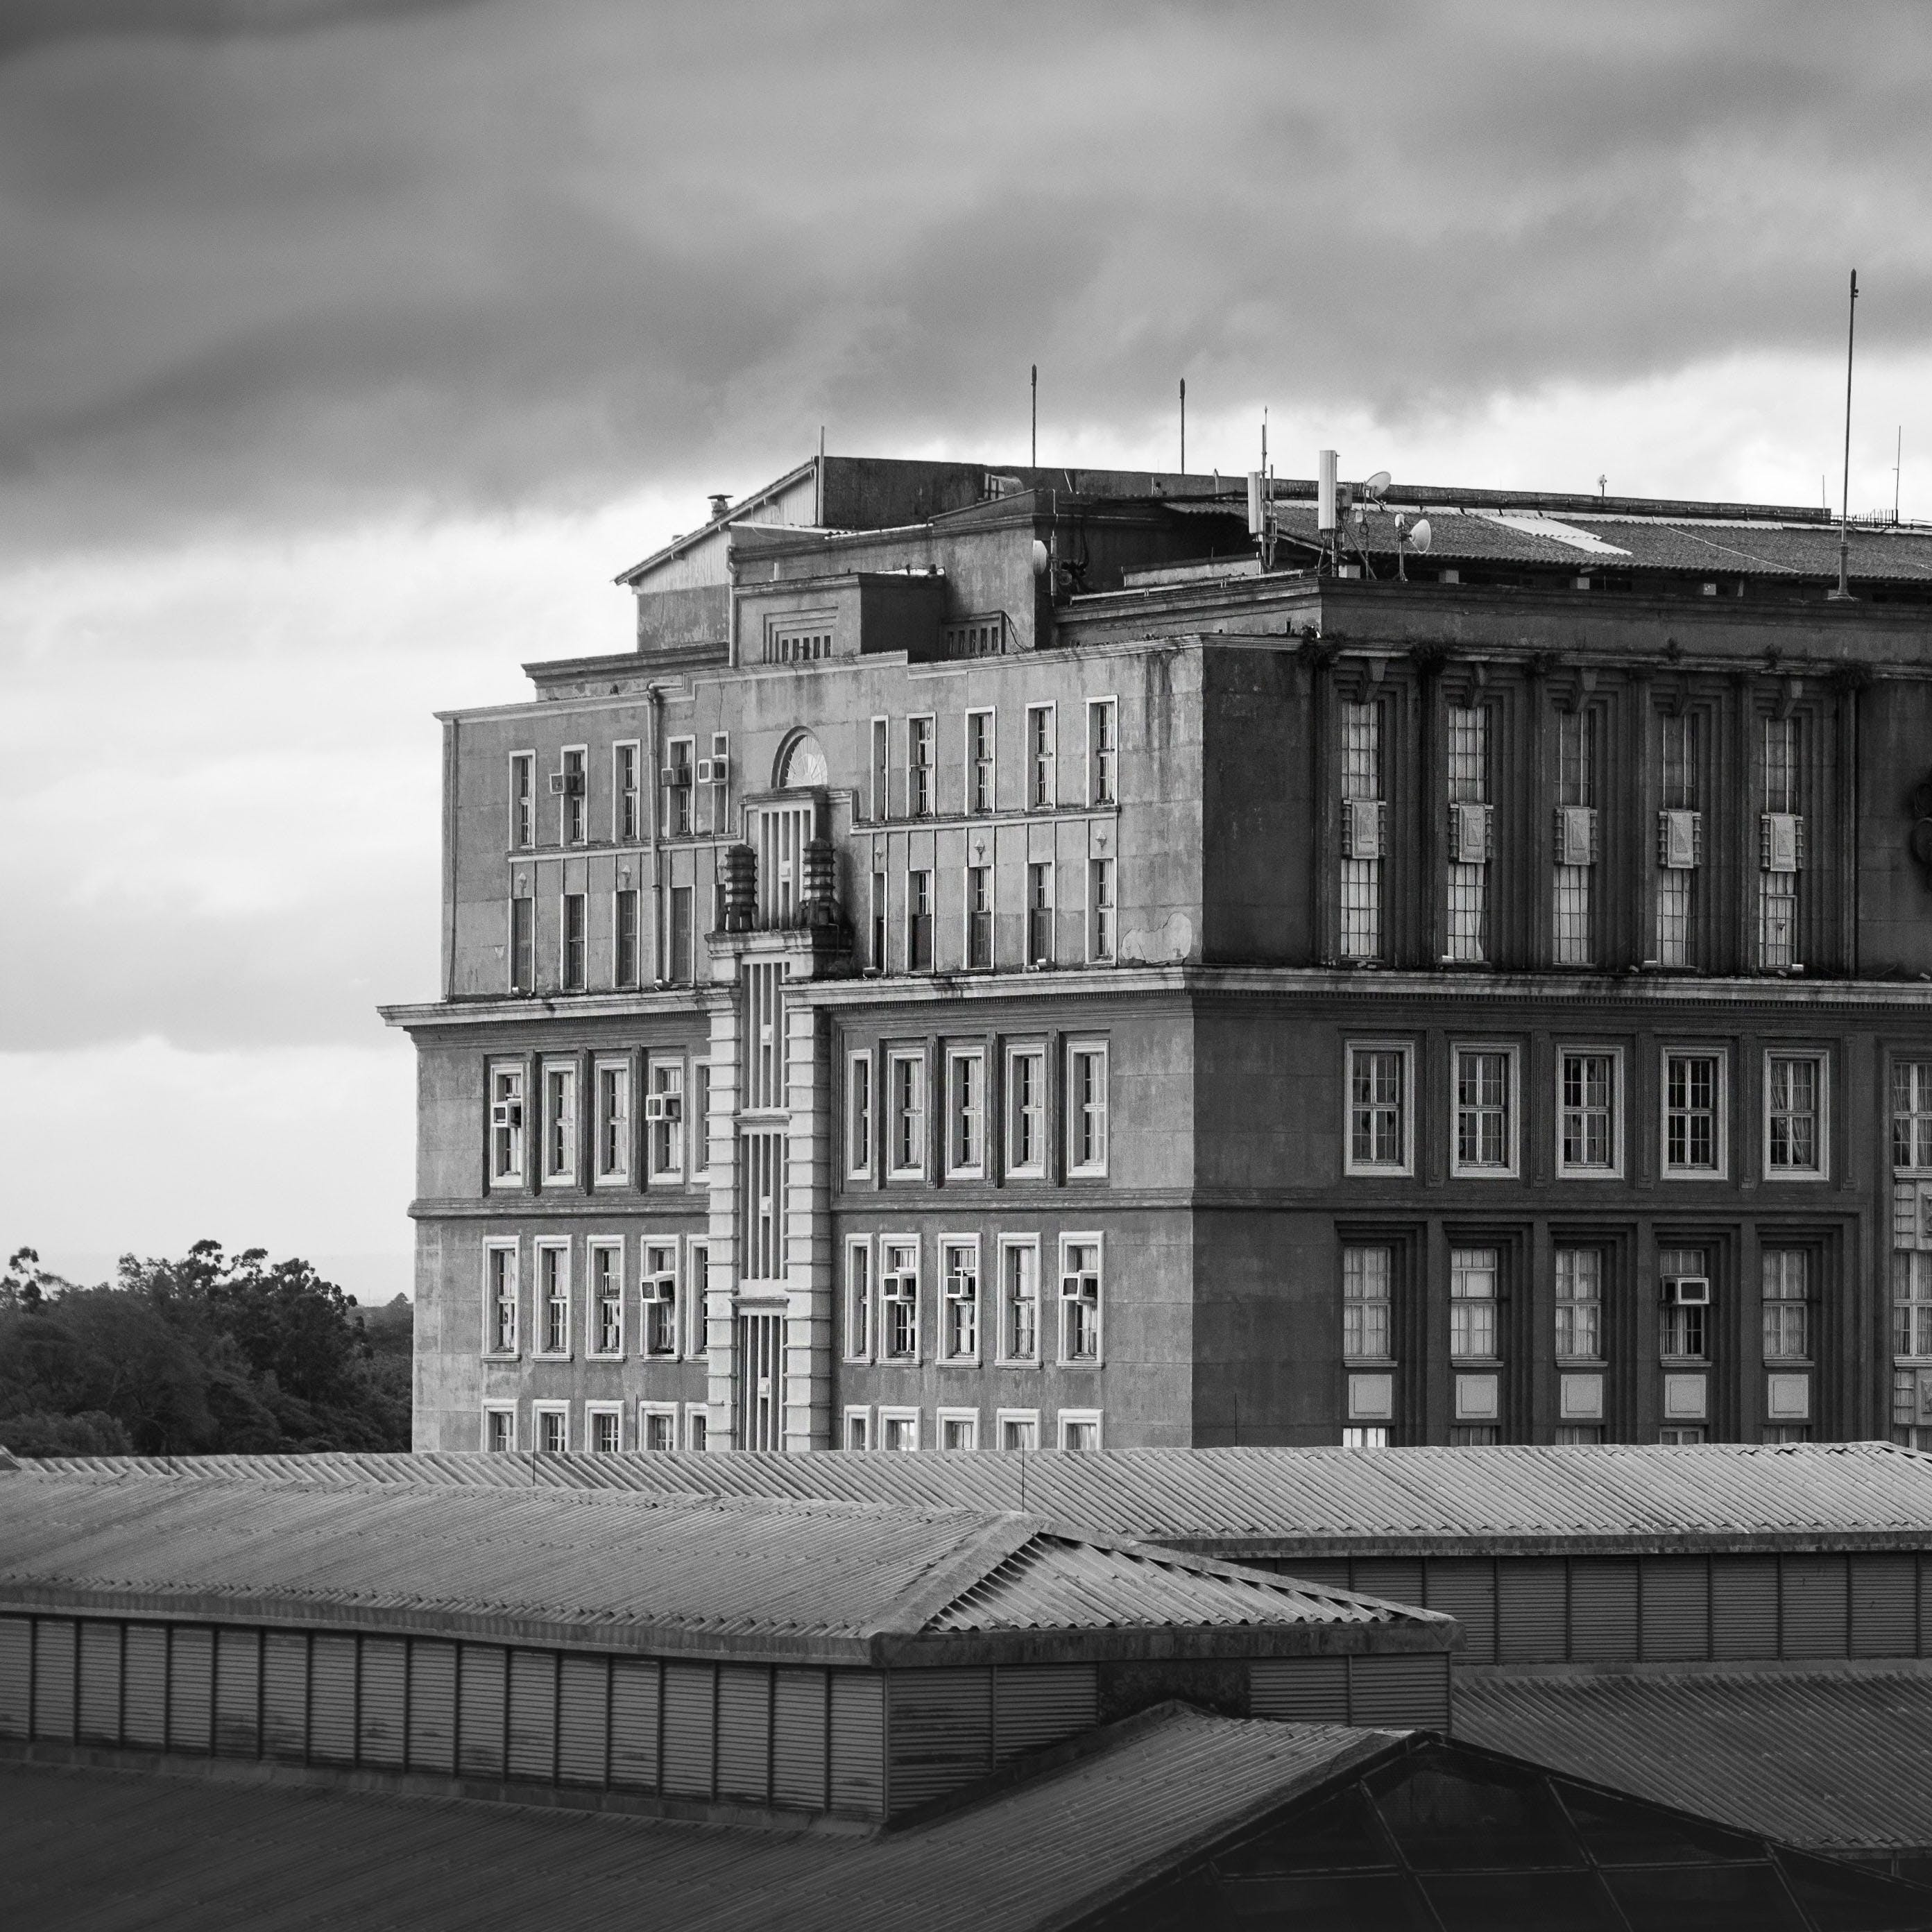 Grayscale Photo of Gray Concrete Building Under the Cloudy Skies